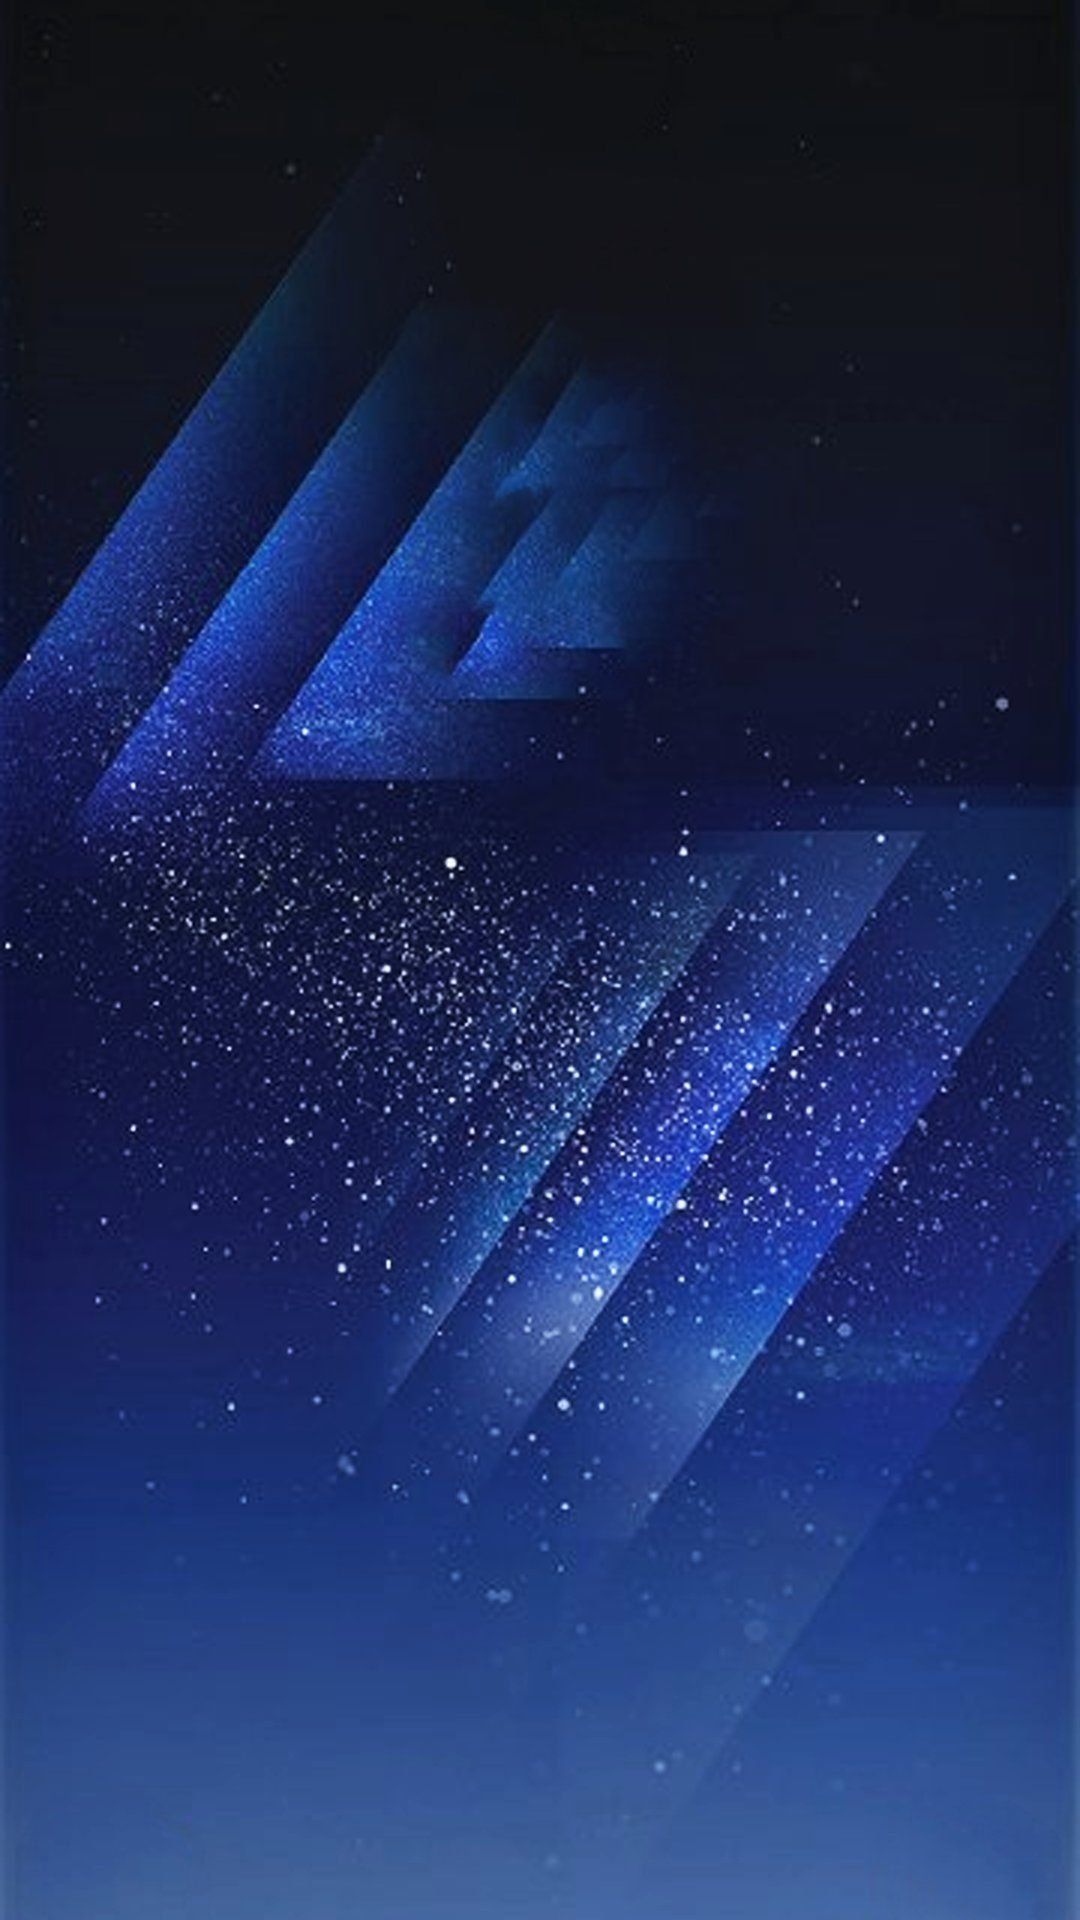 samsung wallpapers note 8 lock screen 2018 wallpapers hd in 2018